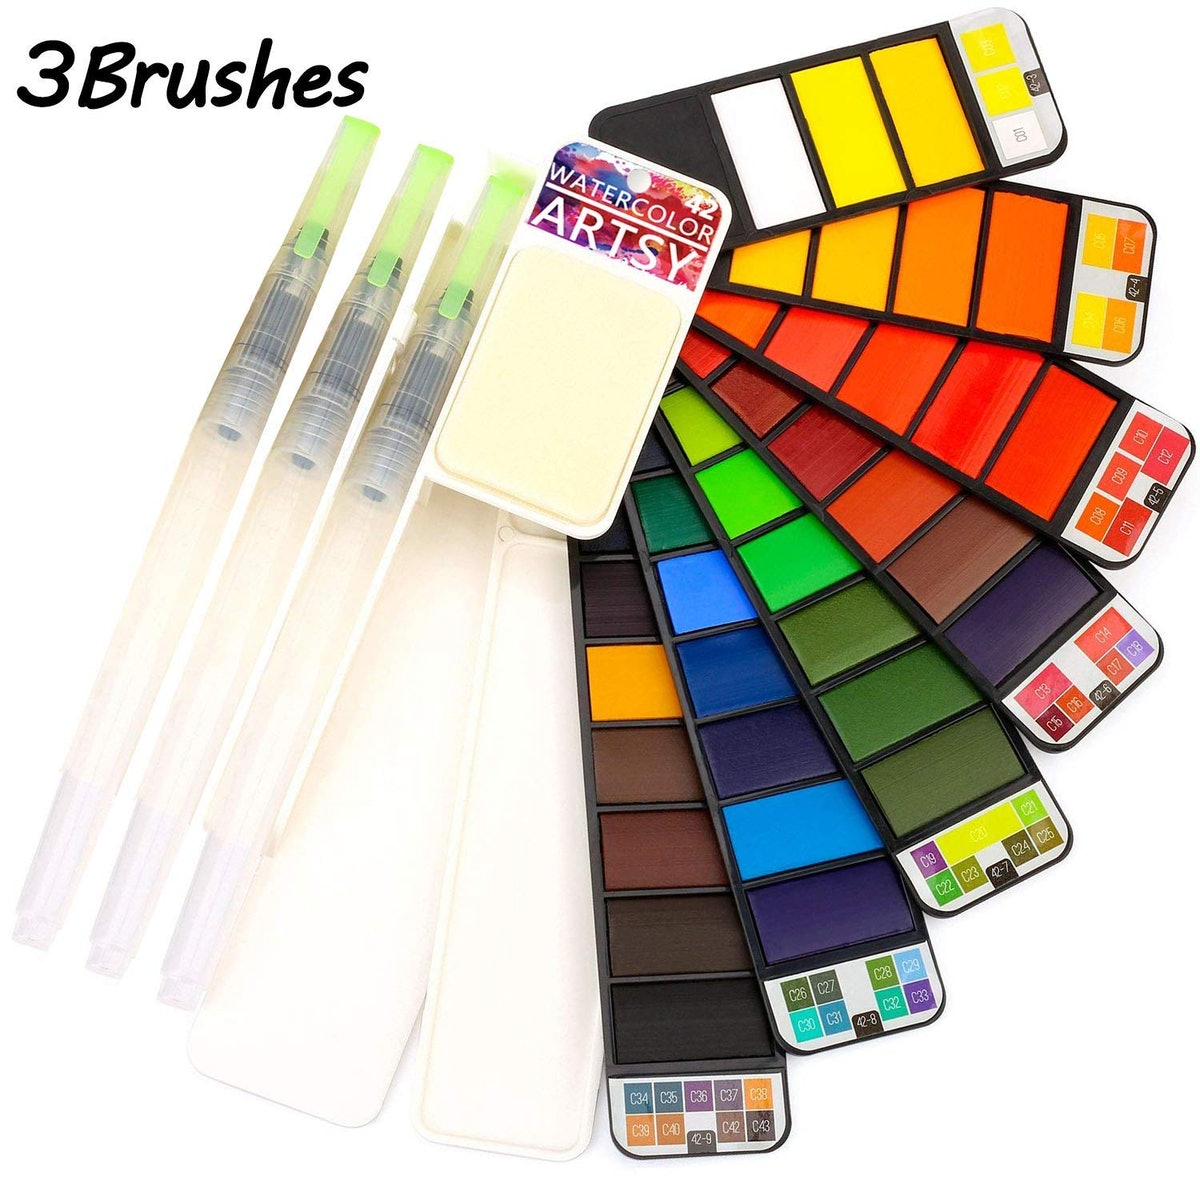 Artsy Watercolor Paint Set – 42 Assorted Colors with 3 Brushes